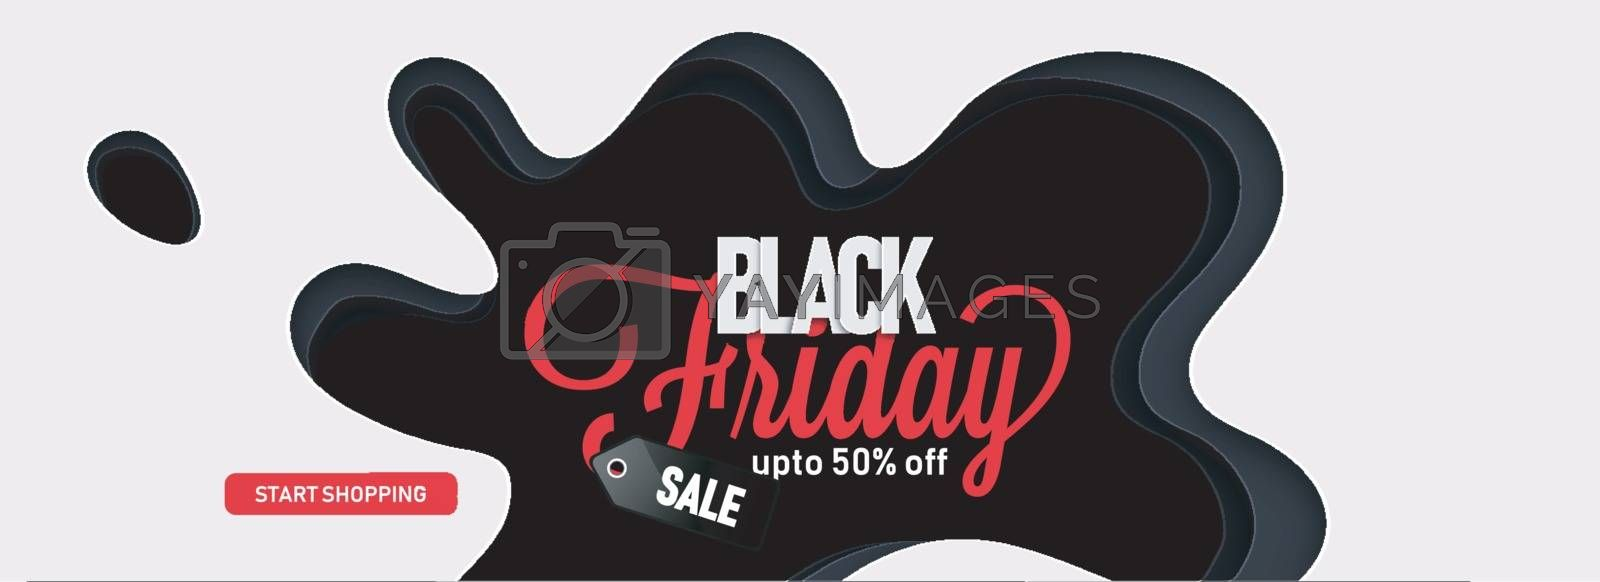 Website sale banner design, 50% discount offer with lettering Black Friday on black abstract background.